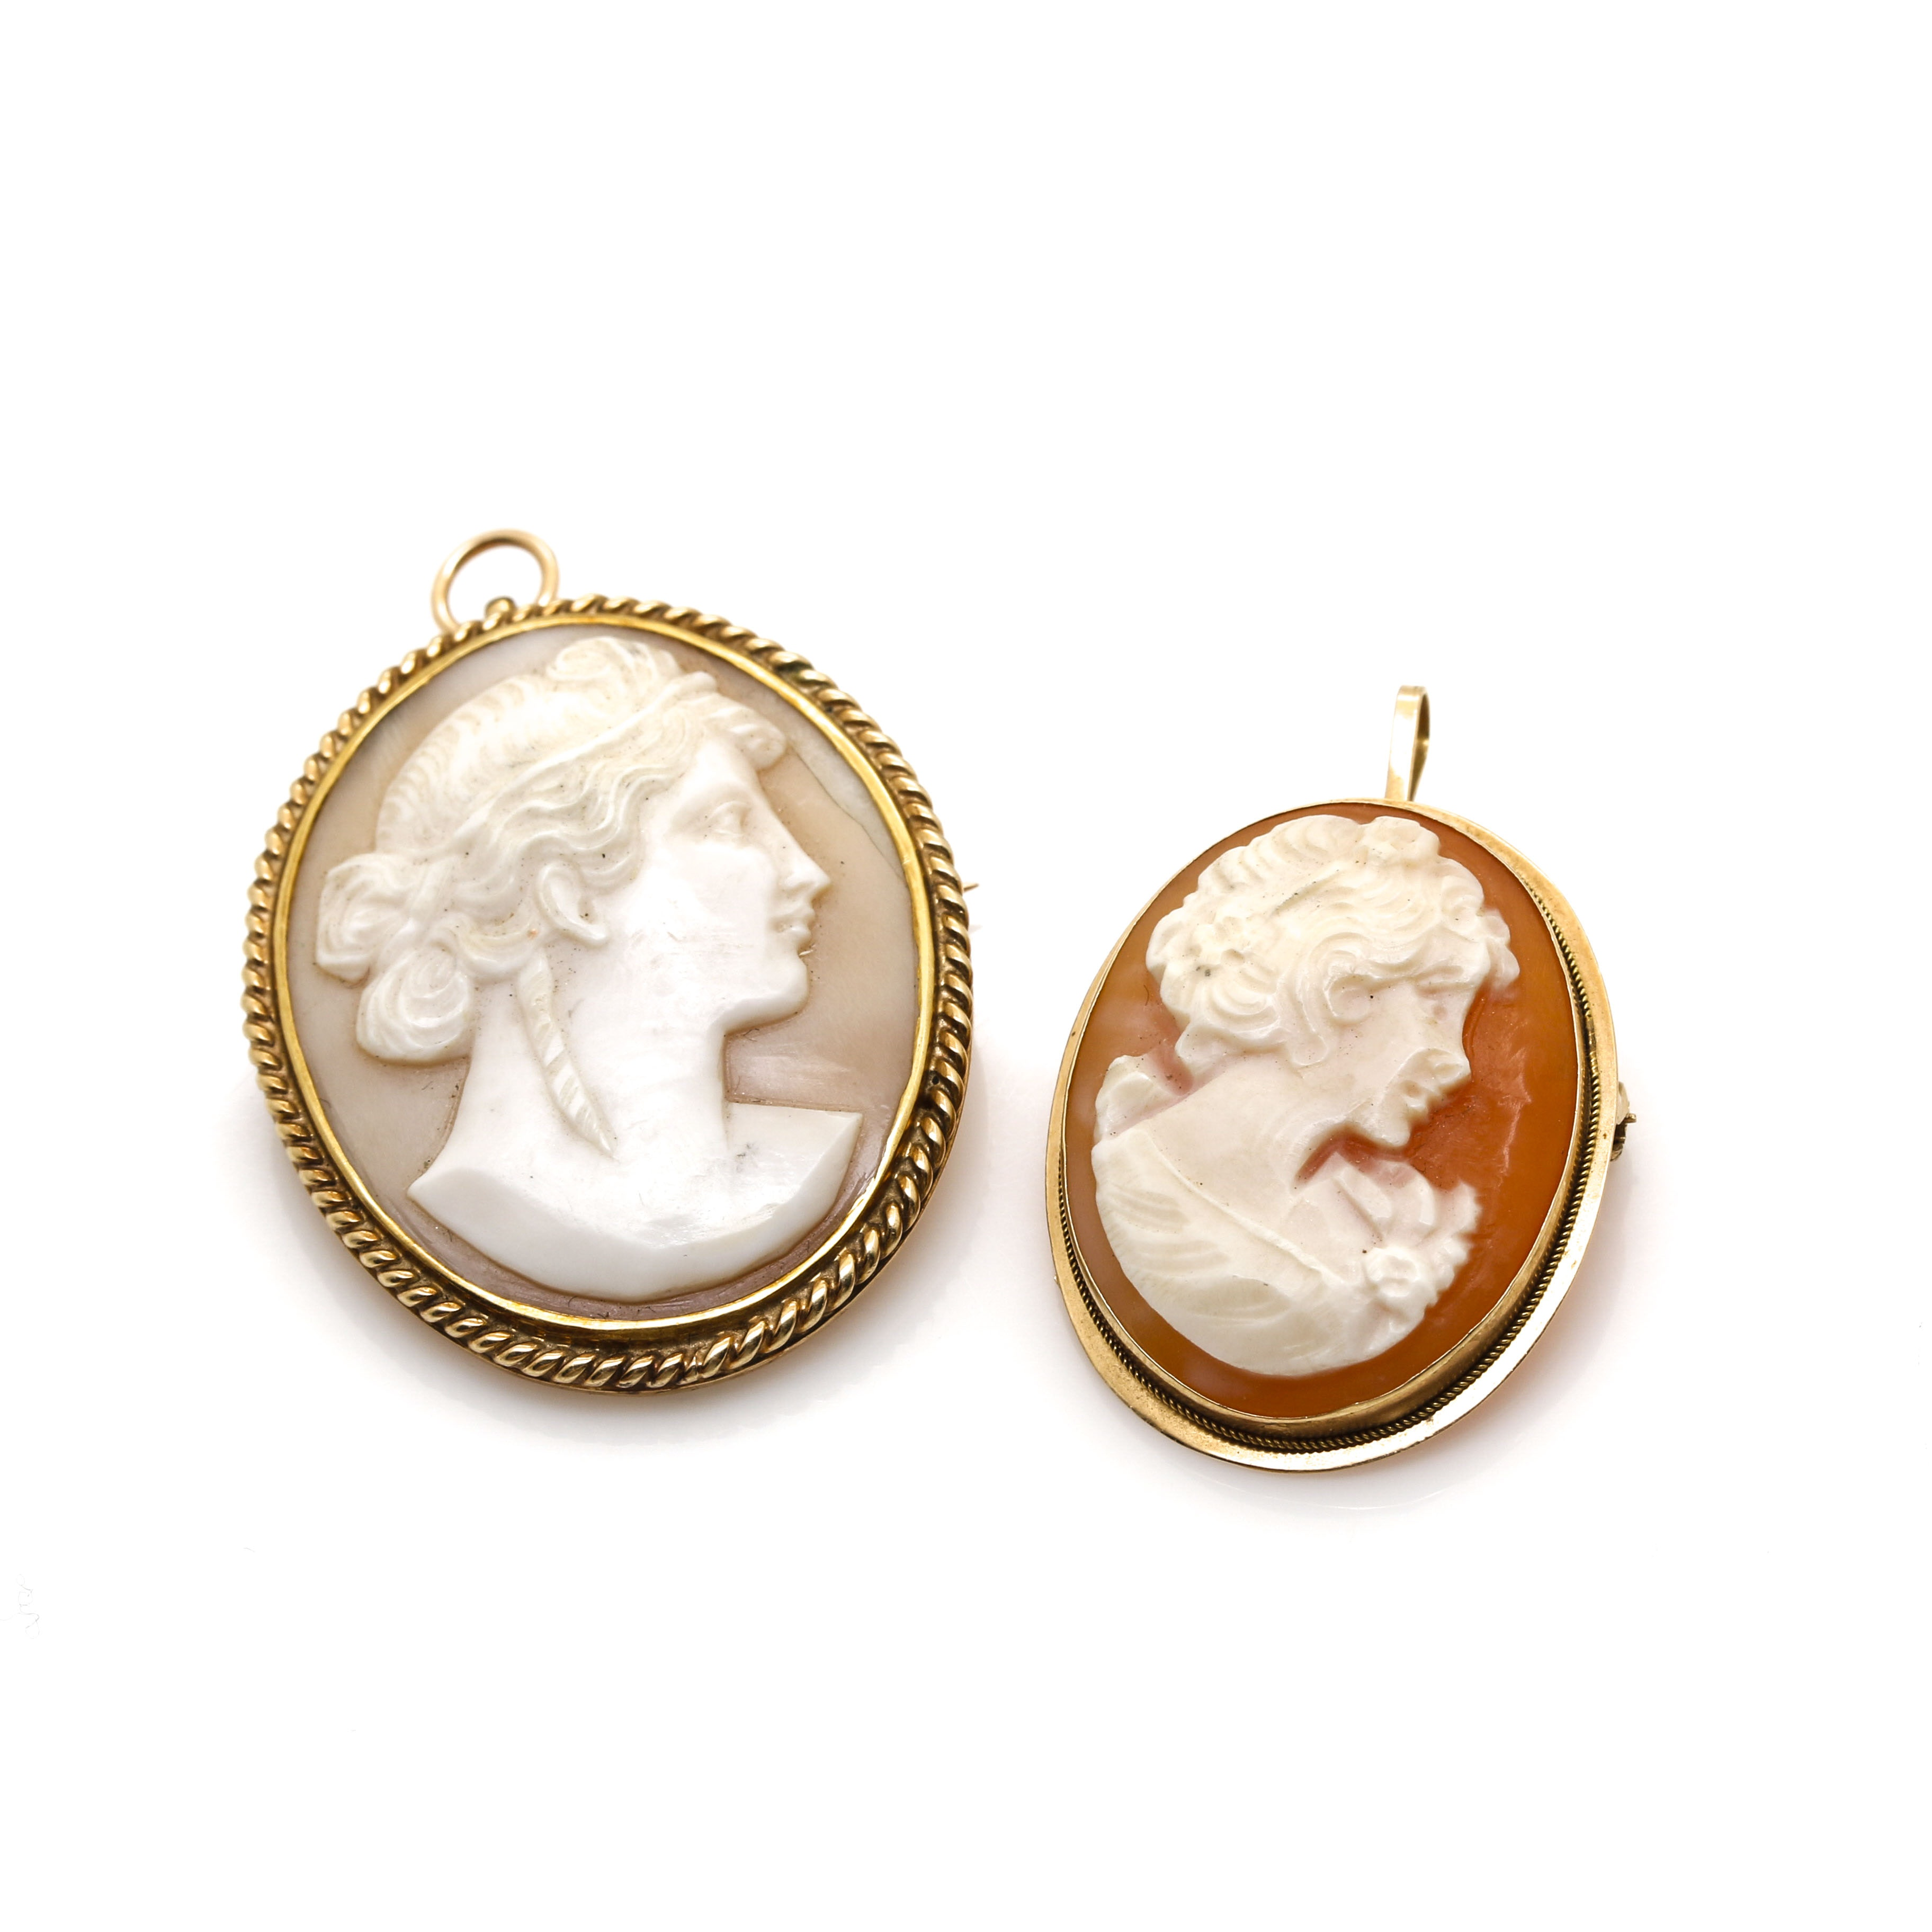 14K Yellow Gold Shell Cameo Pendant Brooches